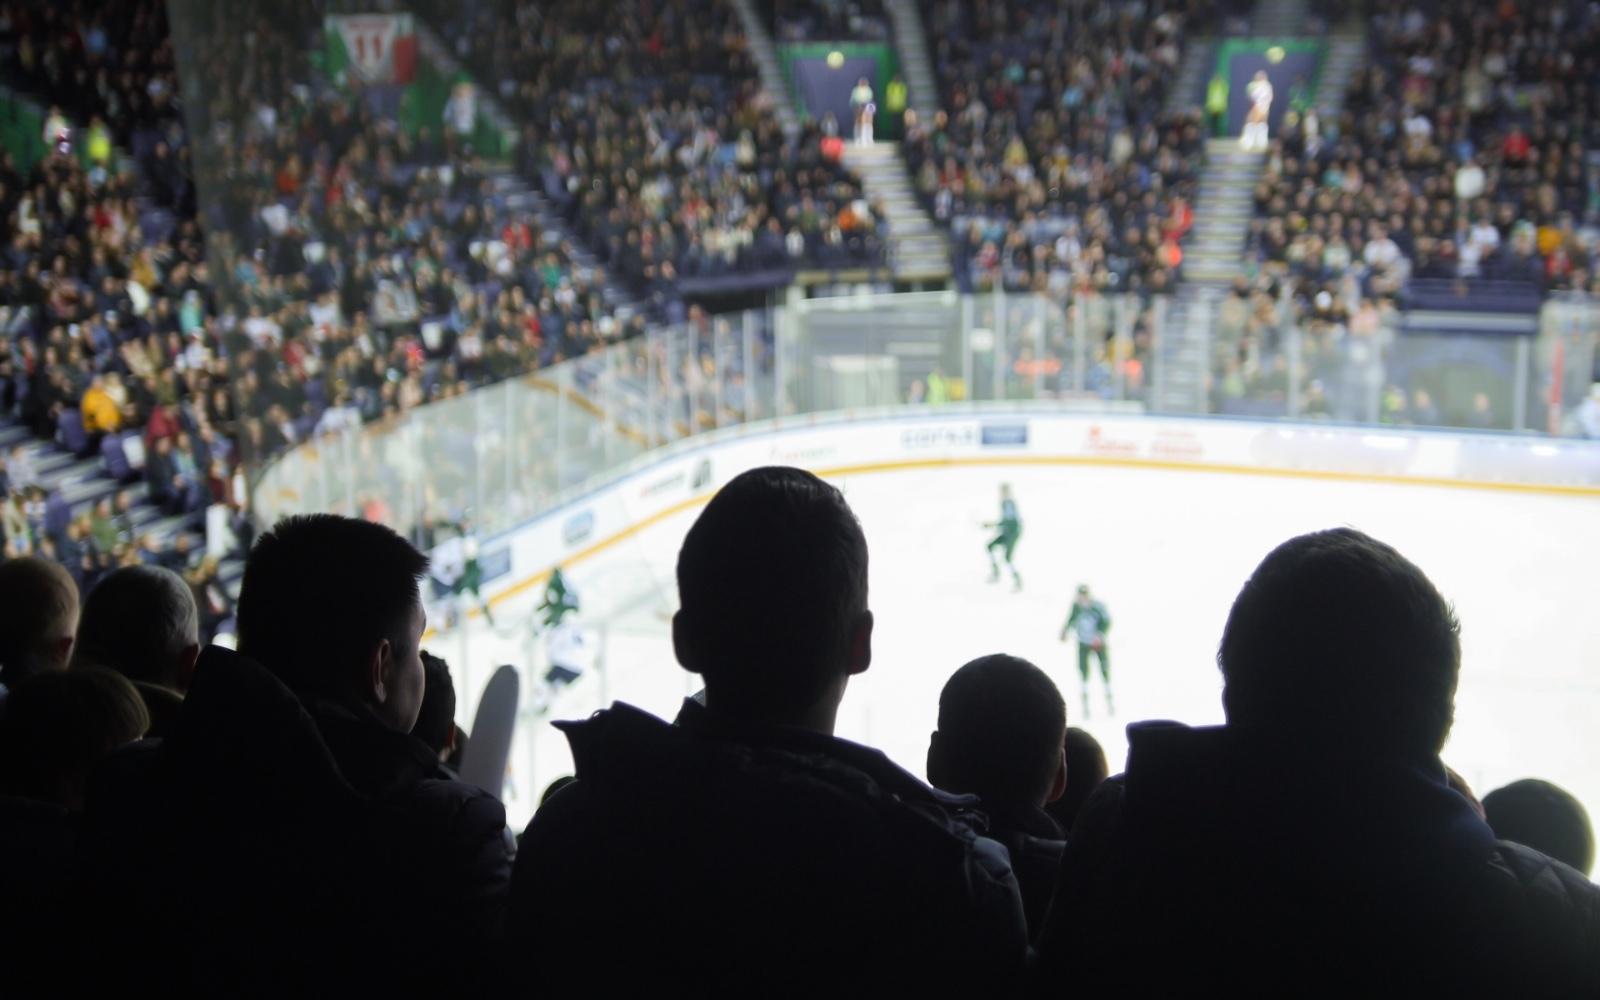 A group of fans watch a hockey game at the stadium